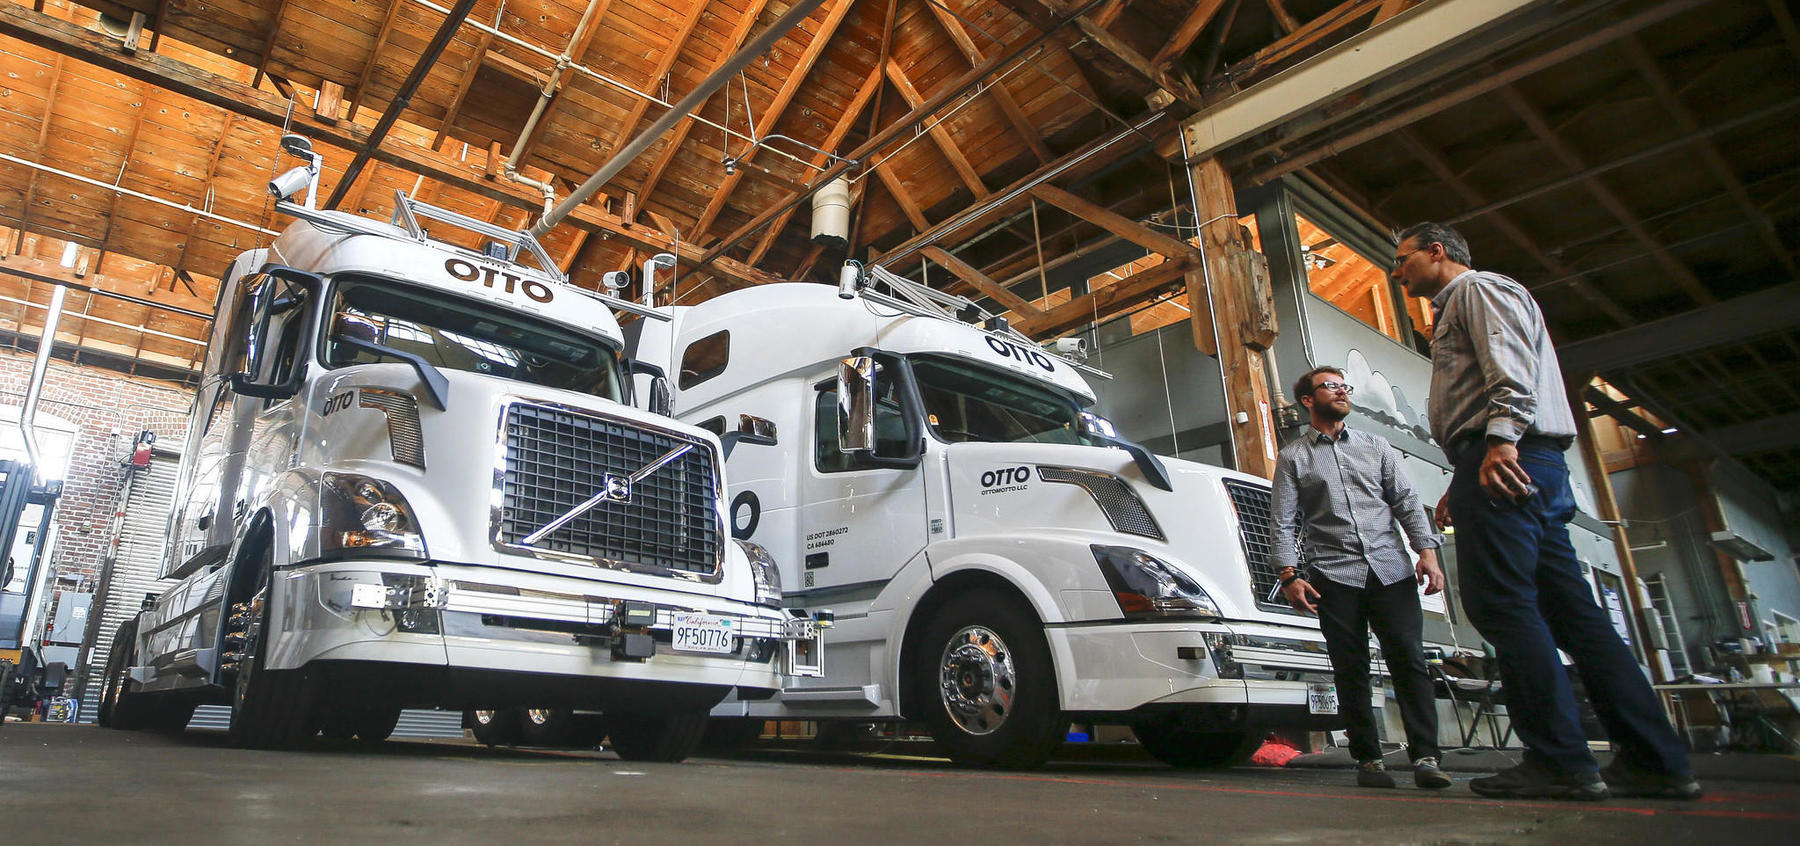 Robots could replace 1.7 million American truckers in the next decade